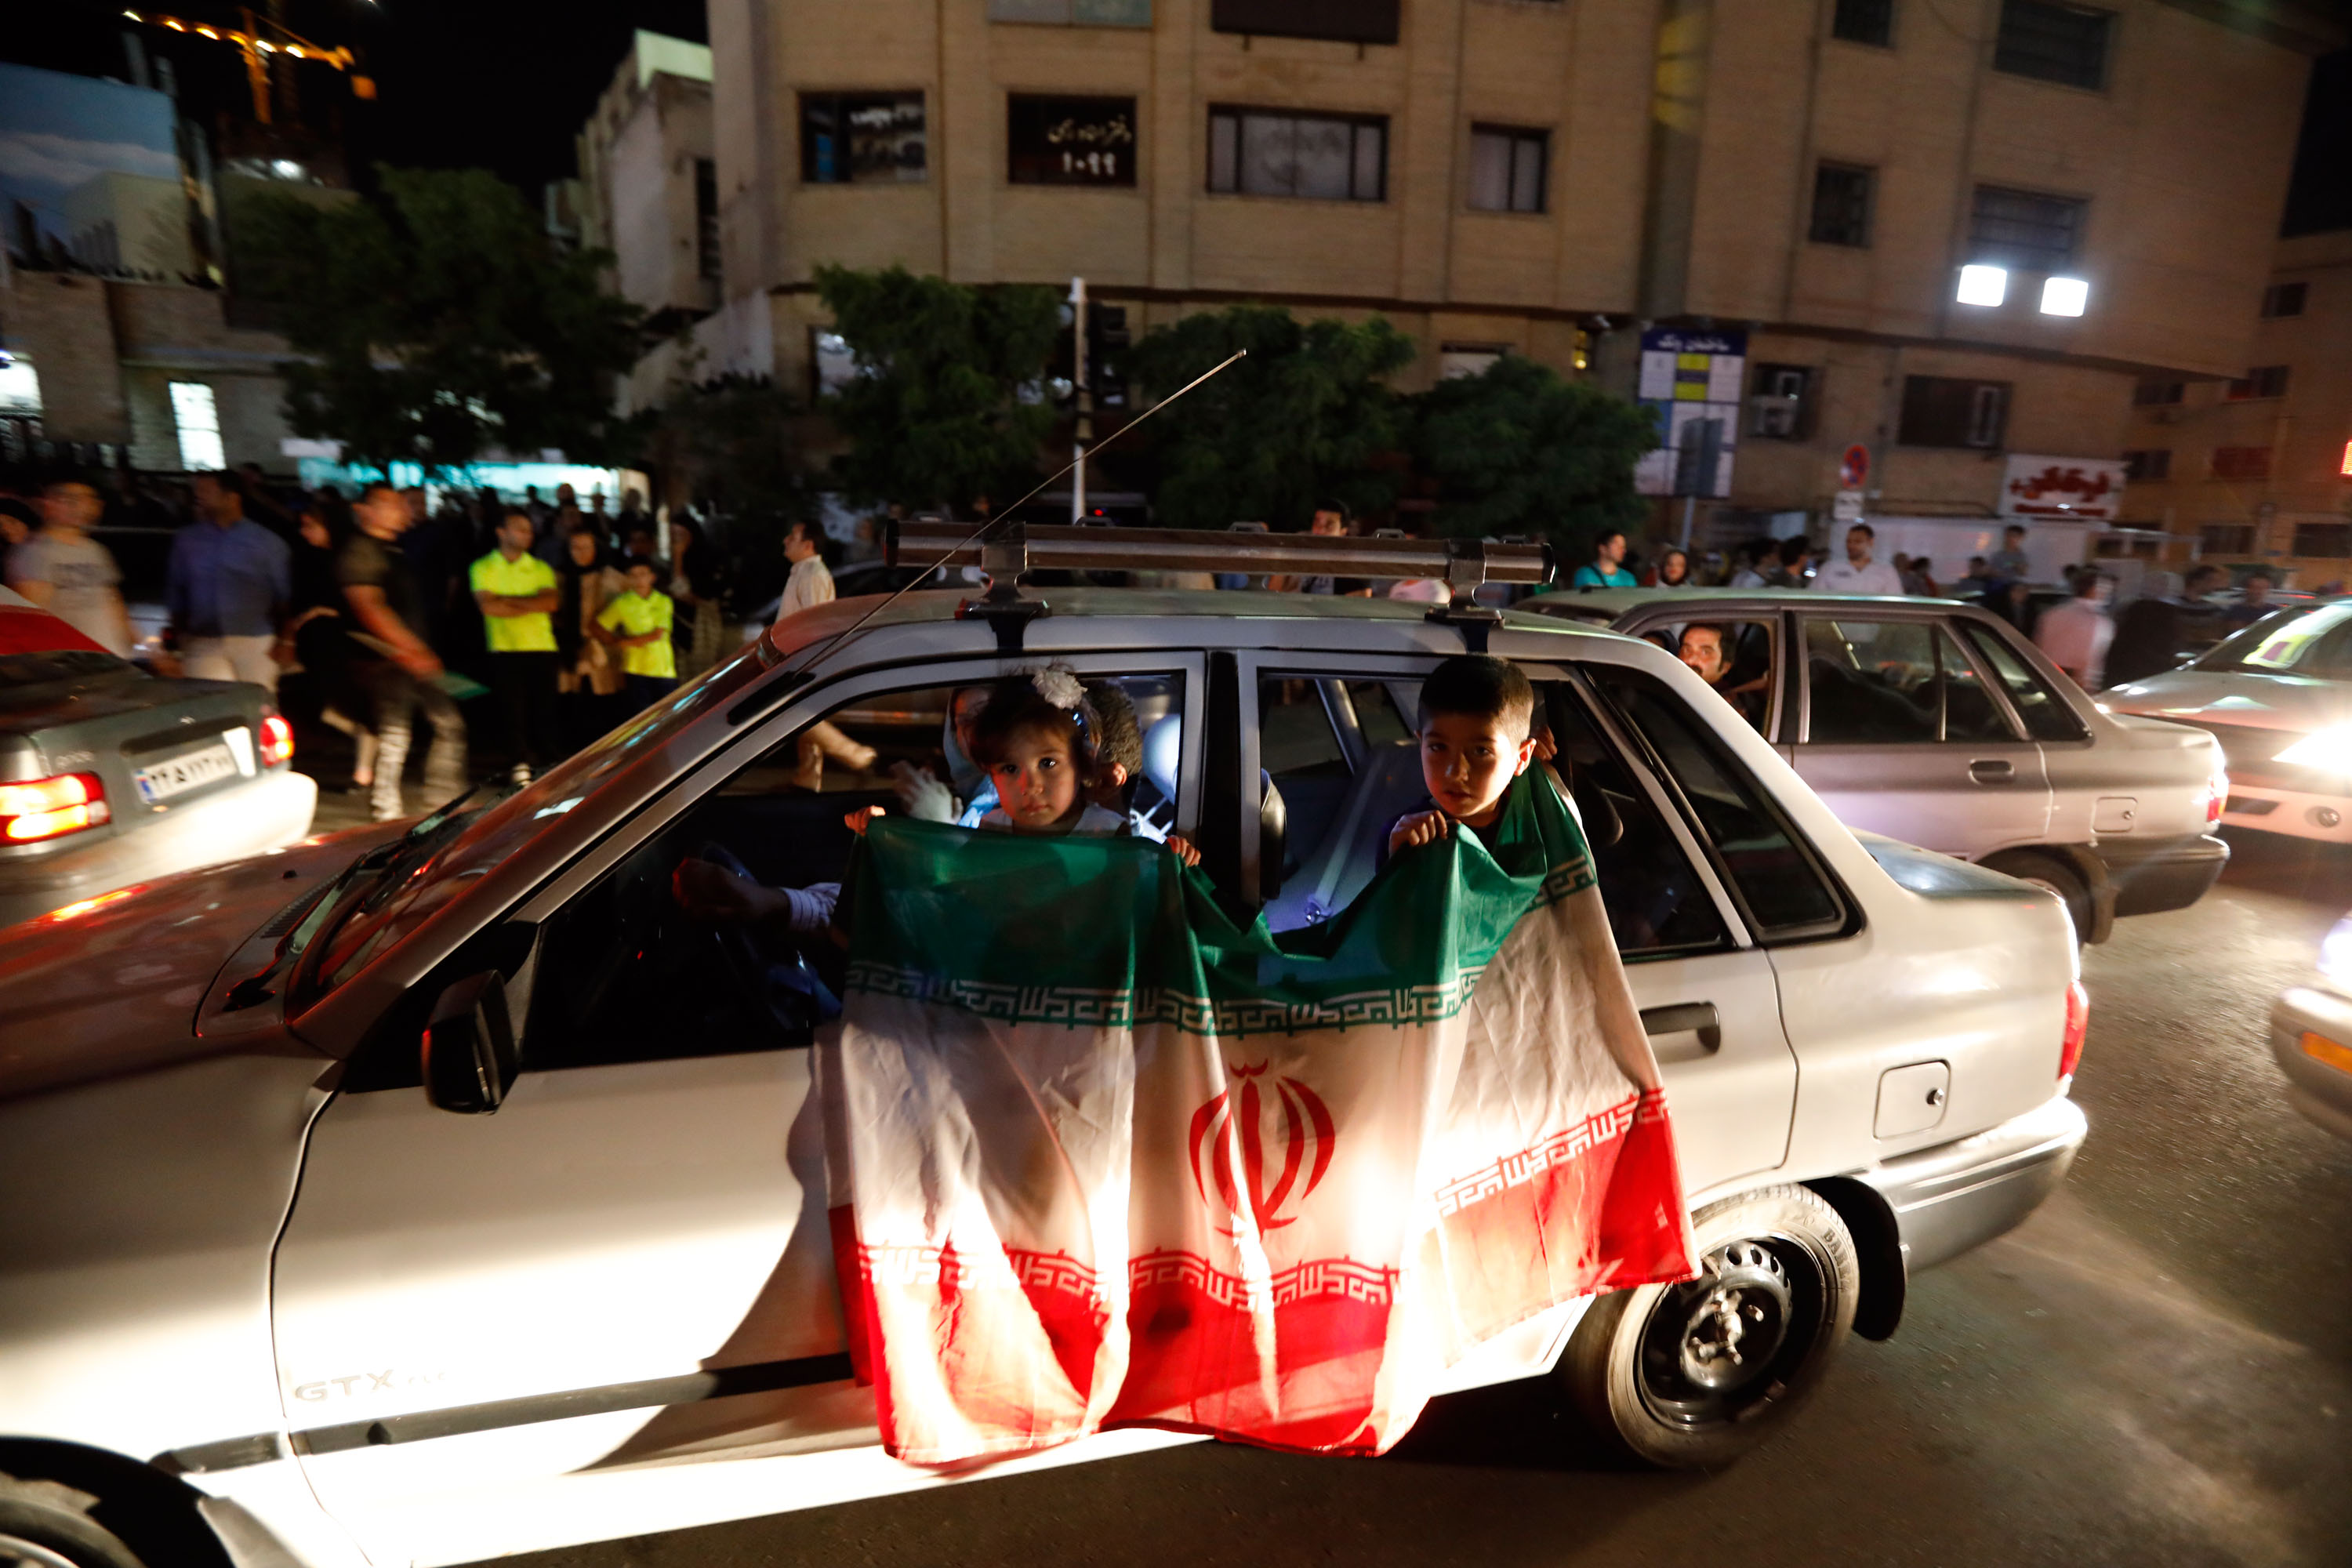 Iranians celebrate on the streets of Tehran early on June 13, 2017, after their national football team won the 2018 World Cup qualifying football match between Iran and Uzbekistan. Iran become the third team assured of a berth in the 2018 World Cup finals along with hosts Russia and Brazil after a 2-0 win over Uzbekistan in Tehran on June 12. / AFP PHOTO / STRINGER (Photo credit should read STRINGER/AFP/Getty Images)